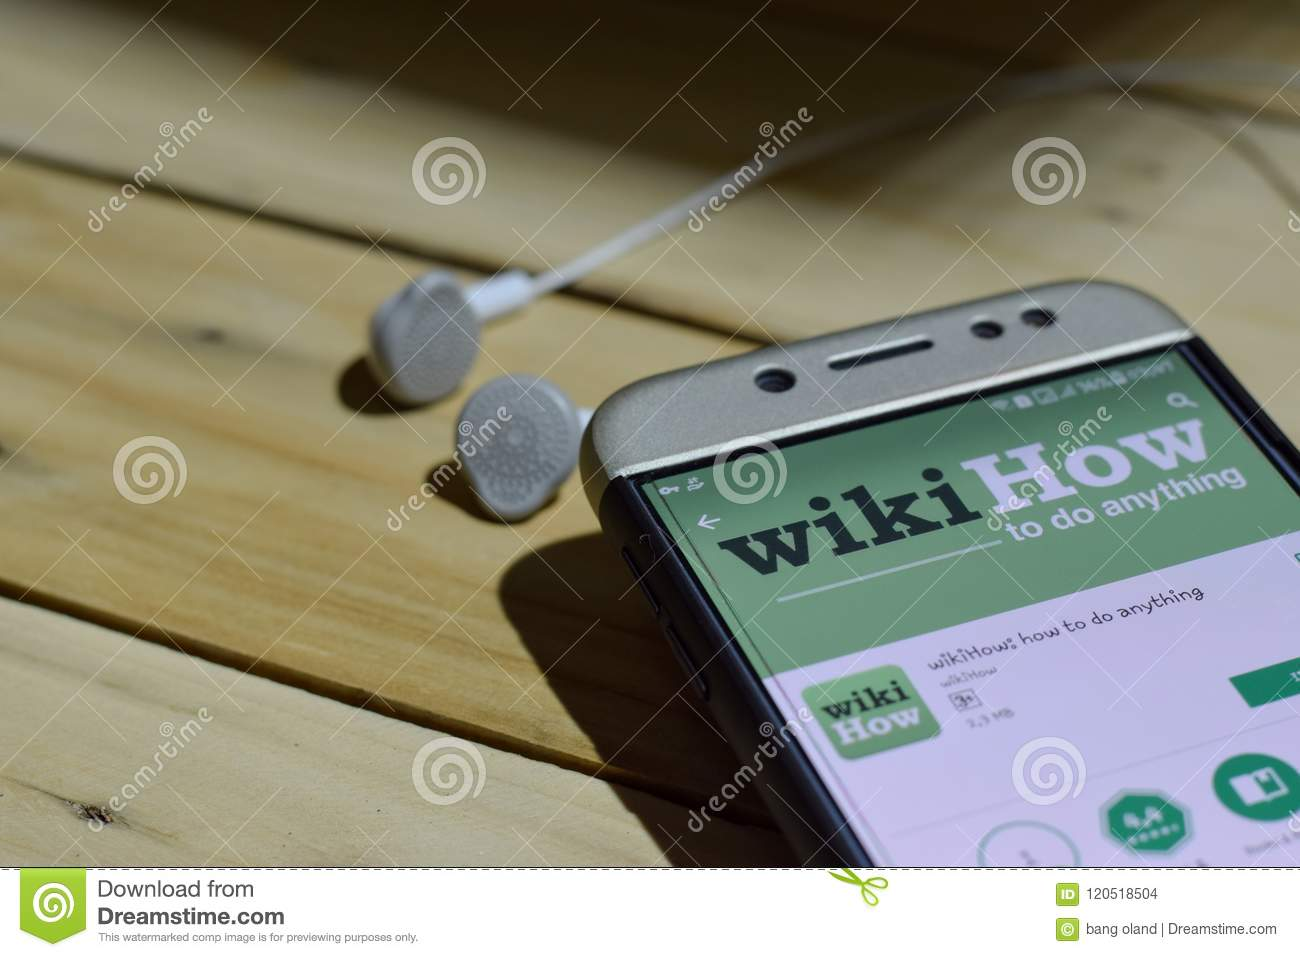 4f1f22d0177d6 WikiHow  How To Do Anything Dev Application On Smartphone Screen ...